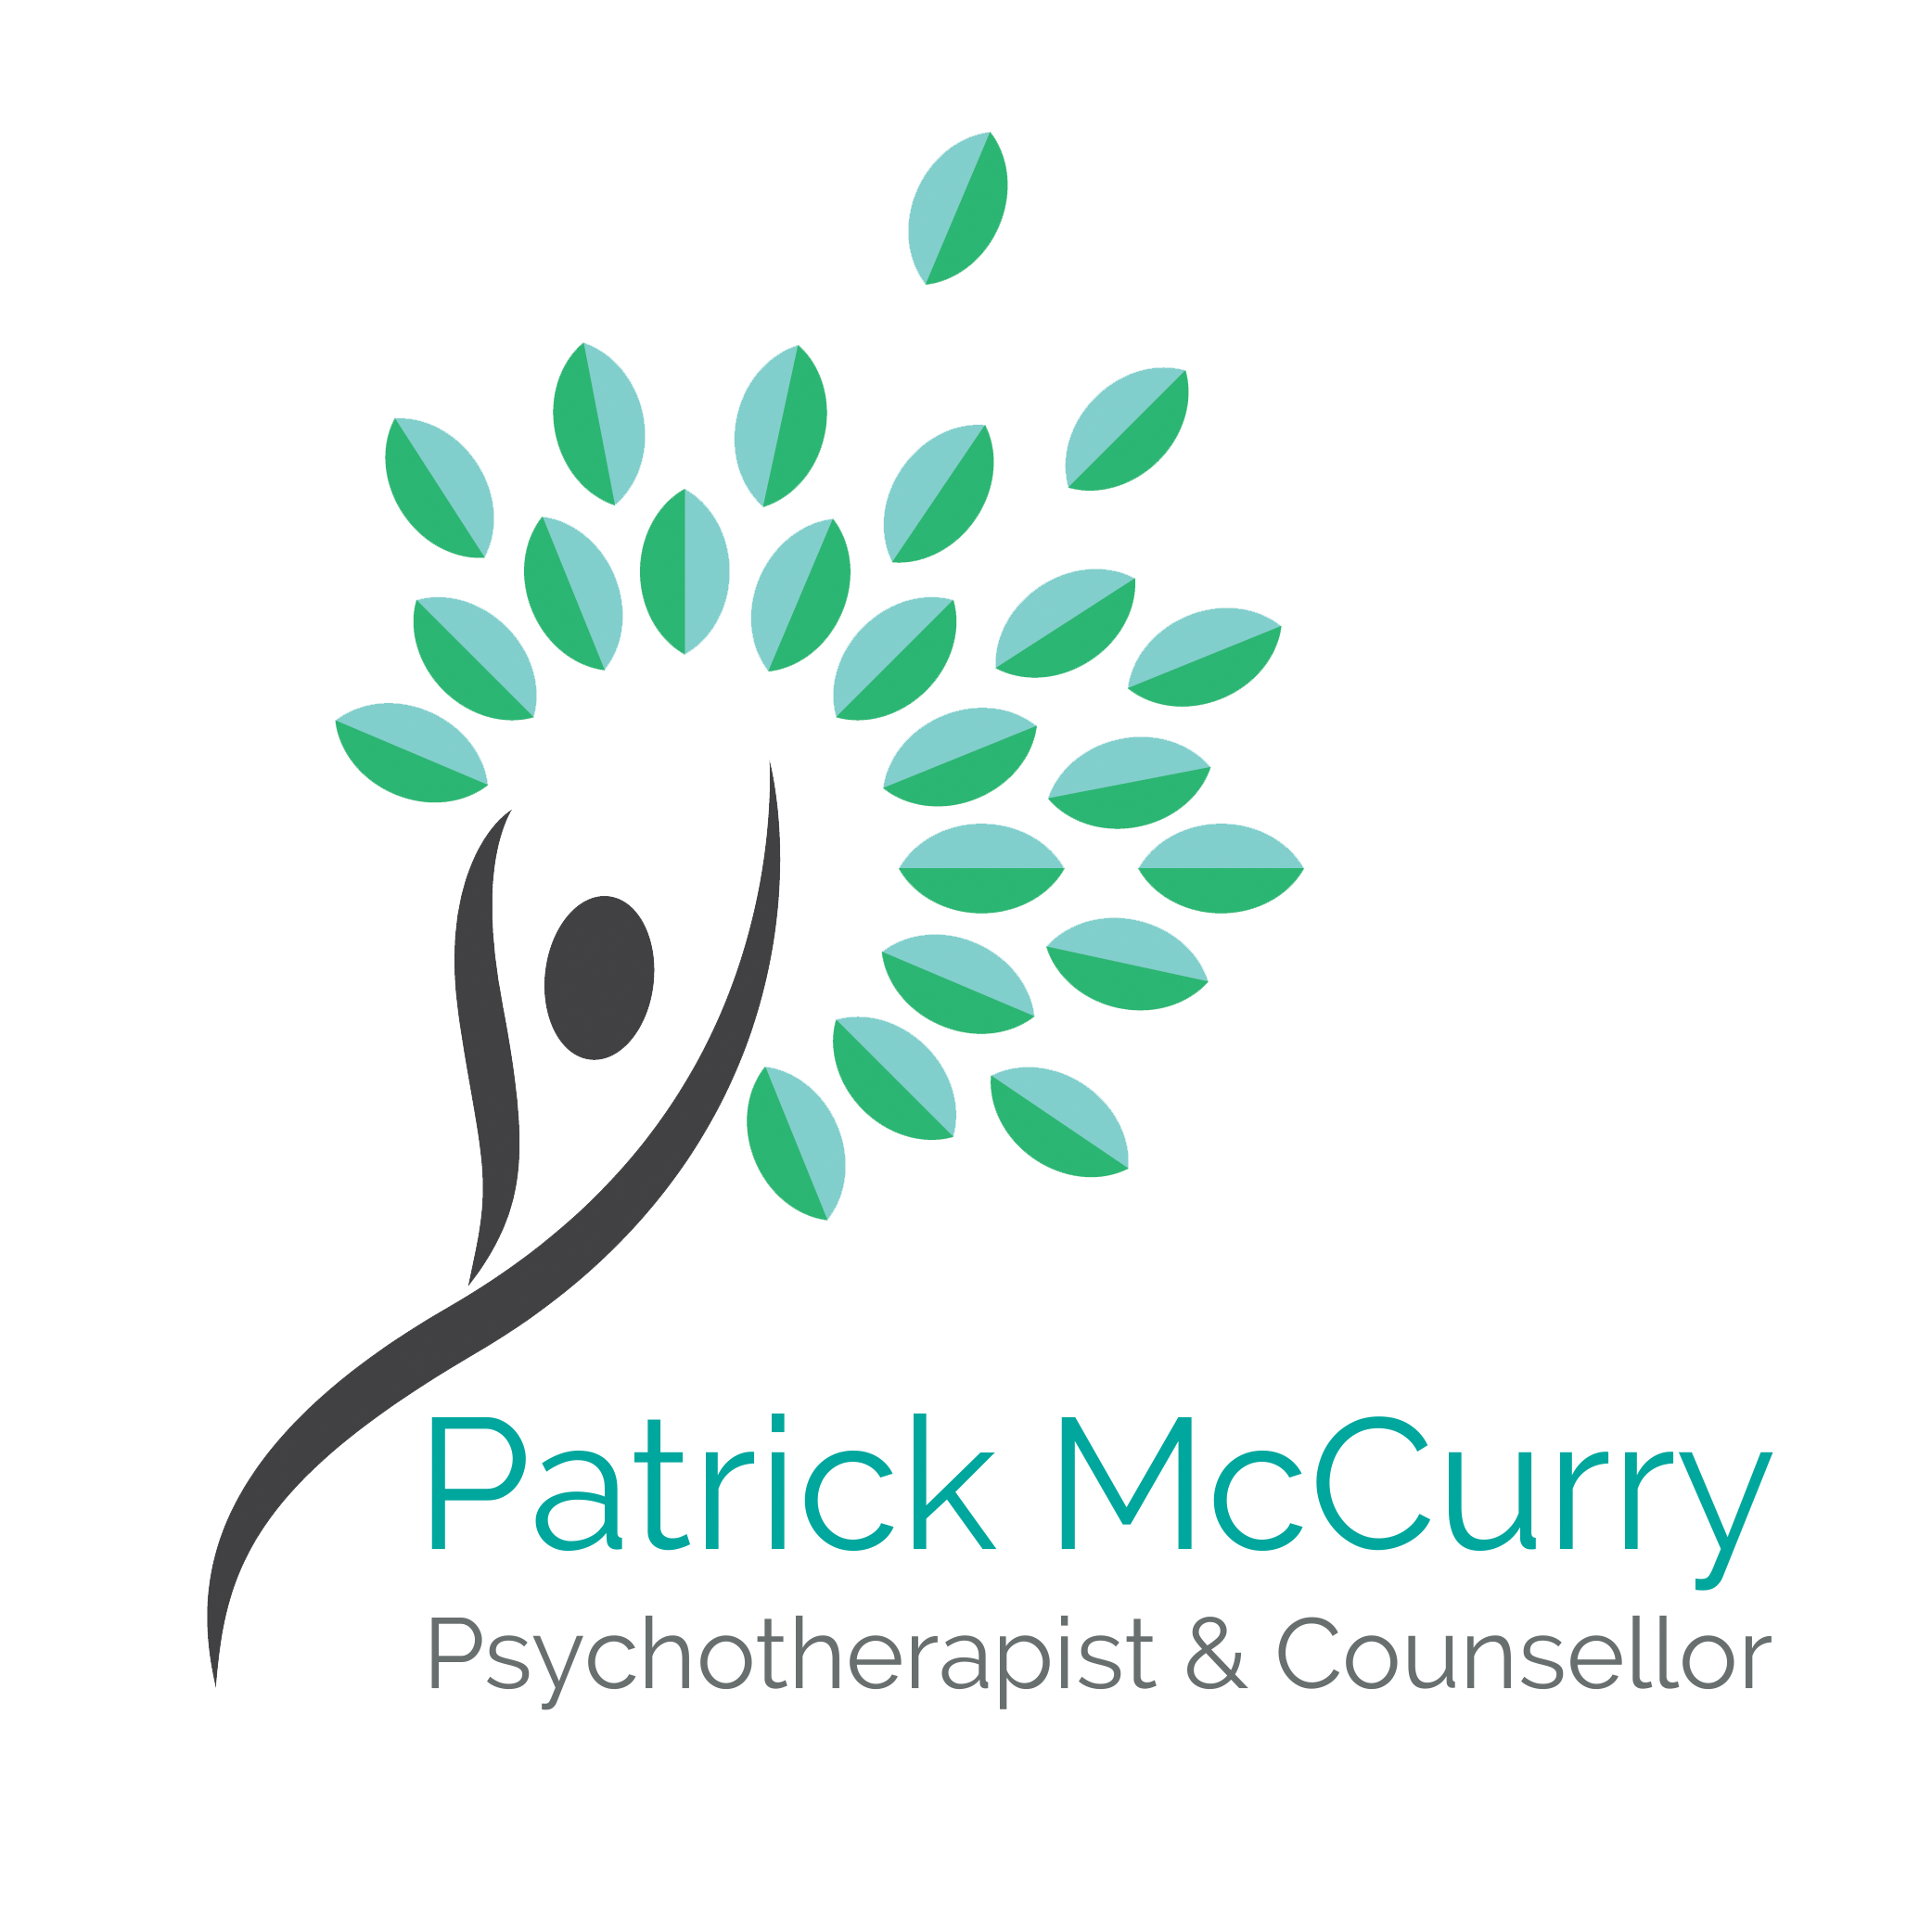 https://www.patrickmccurrycounselling.co.uk/